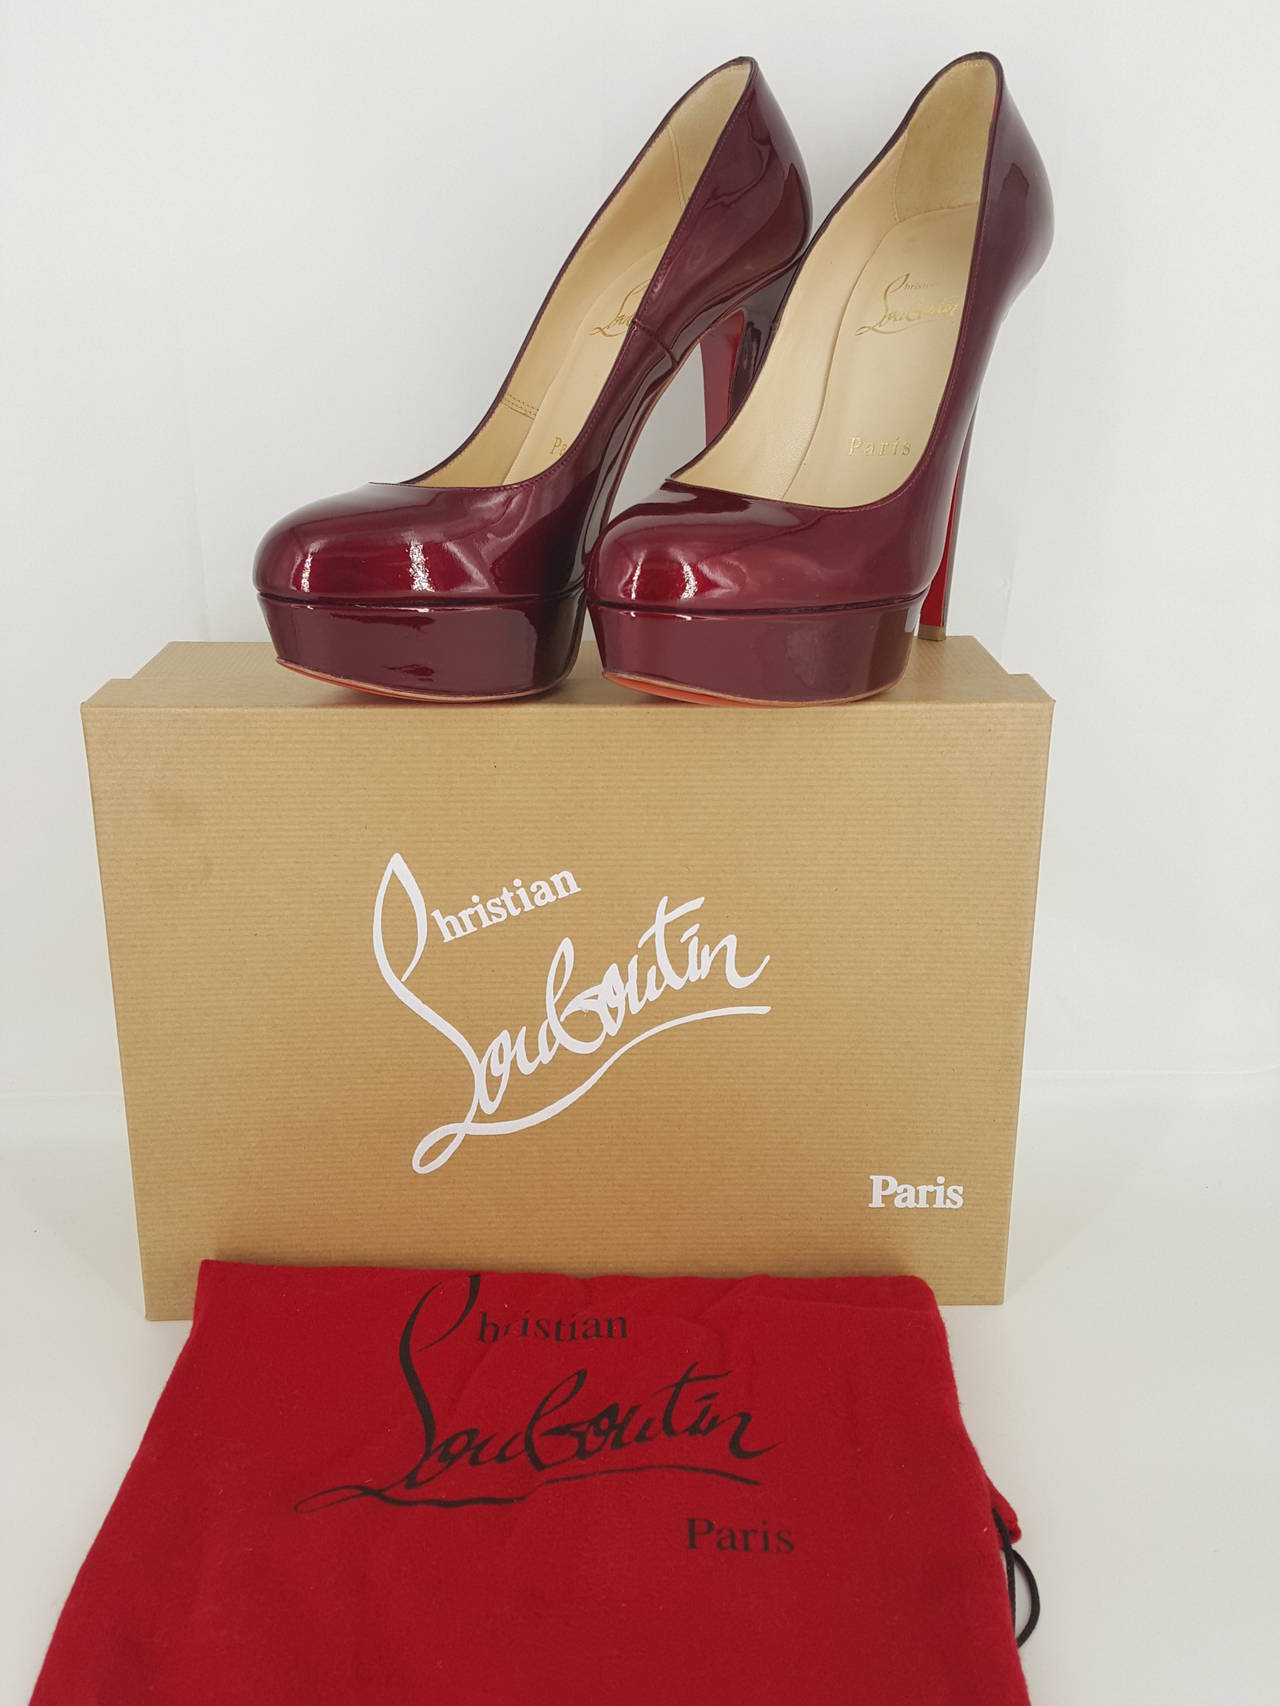 Christian Louboutin Candy Apple Red Patent Leather Pumps Size 36 1/2 5